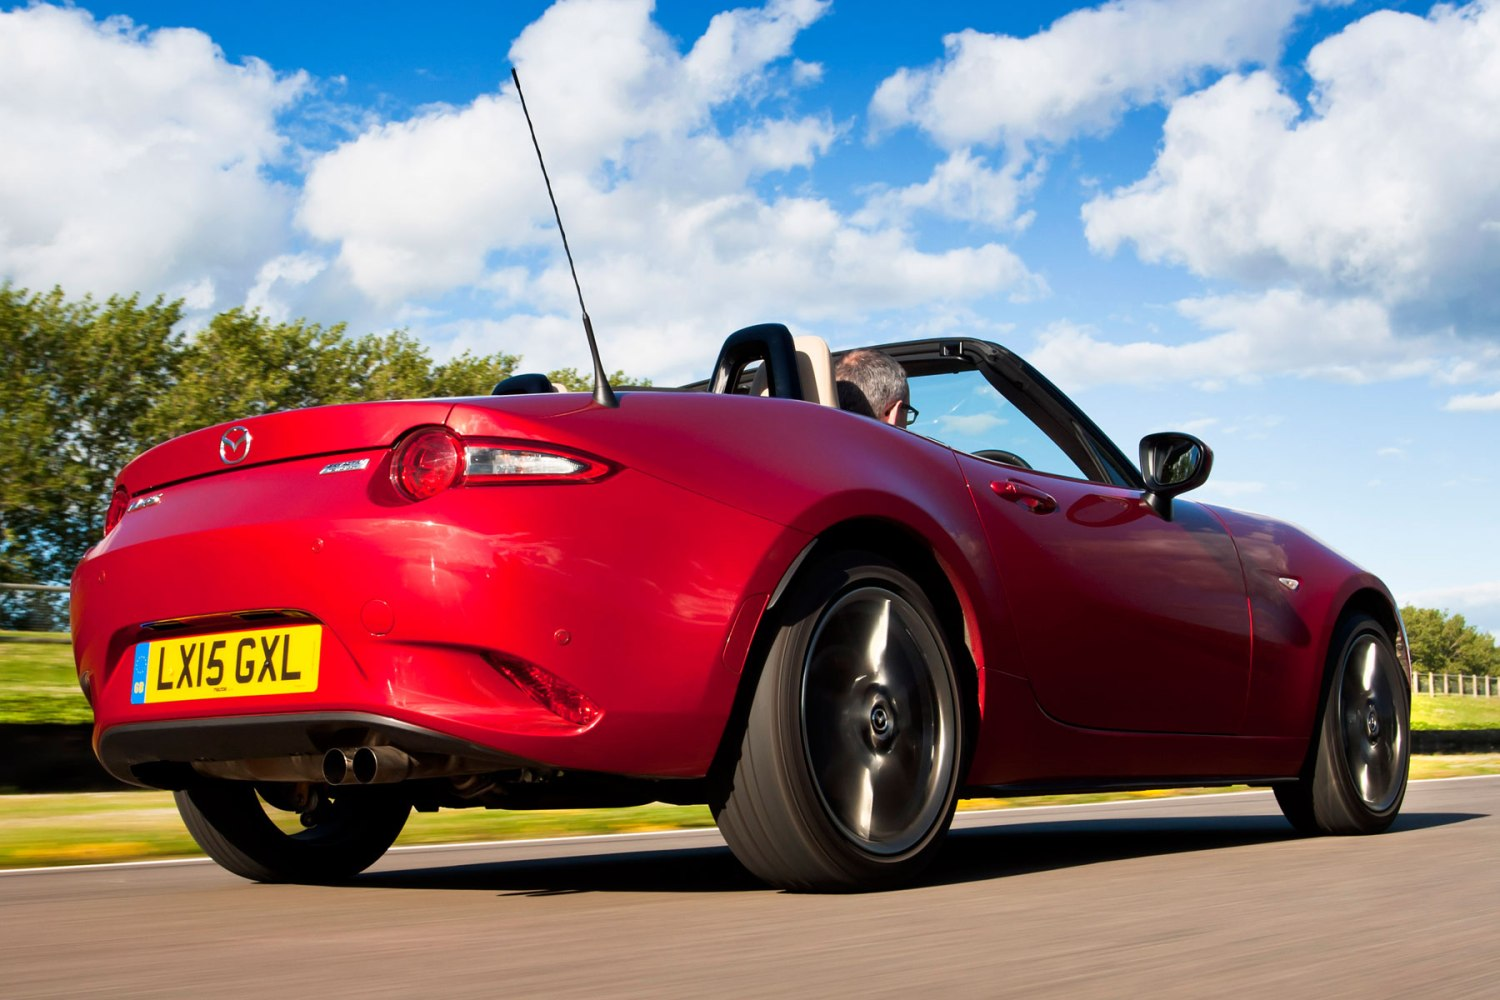 2015 Mazda MX-5: on the road